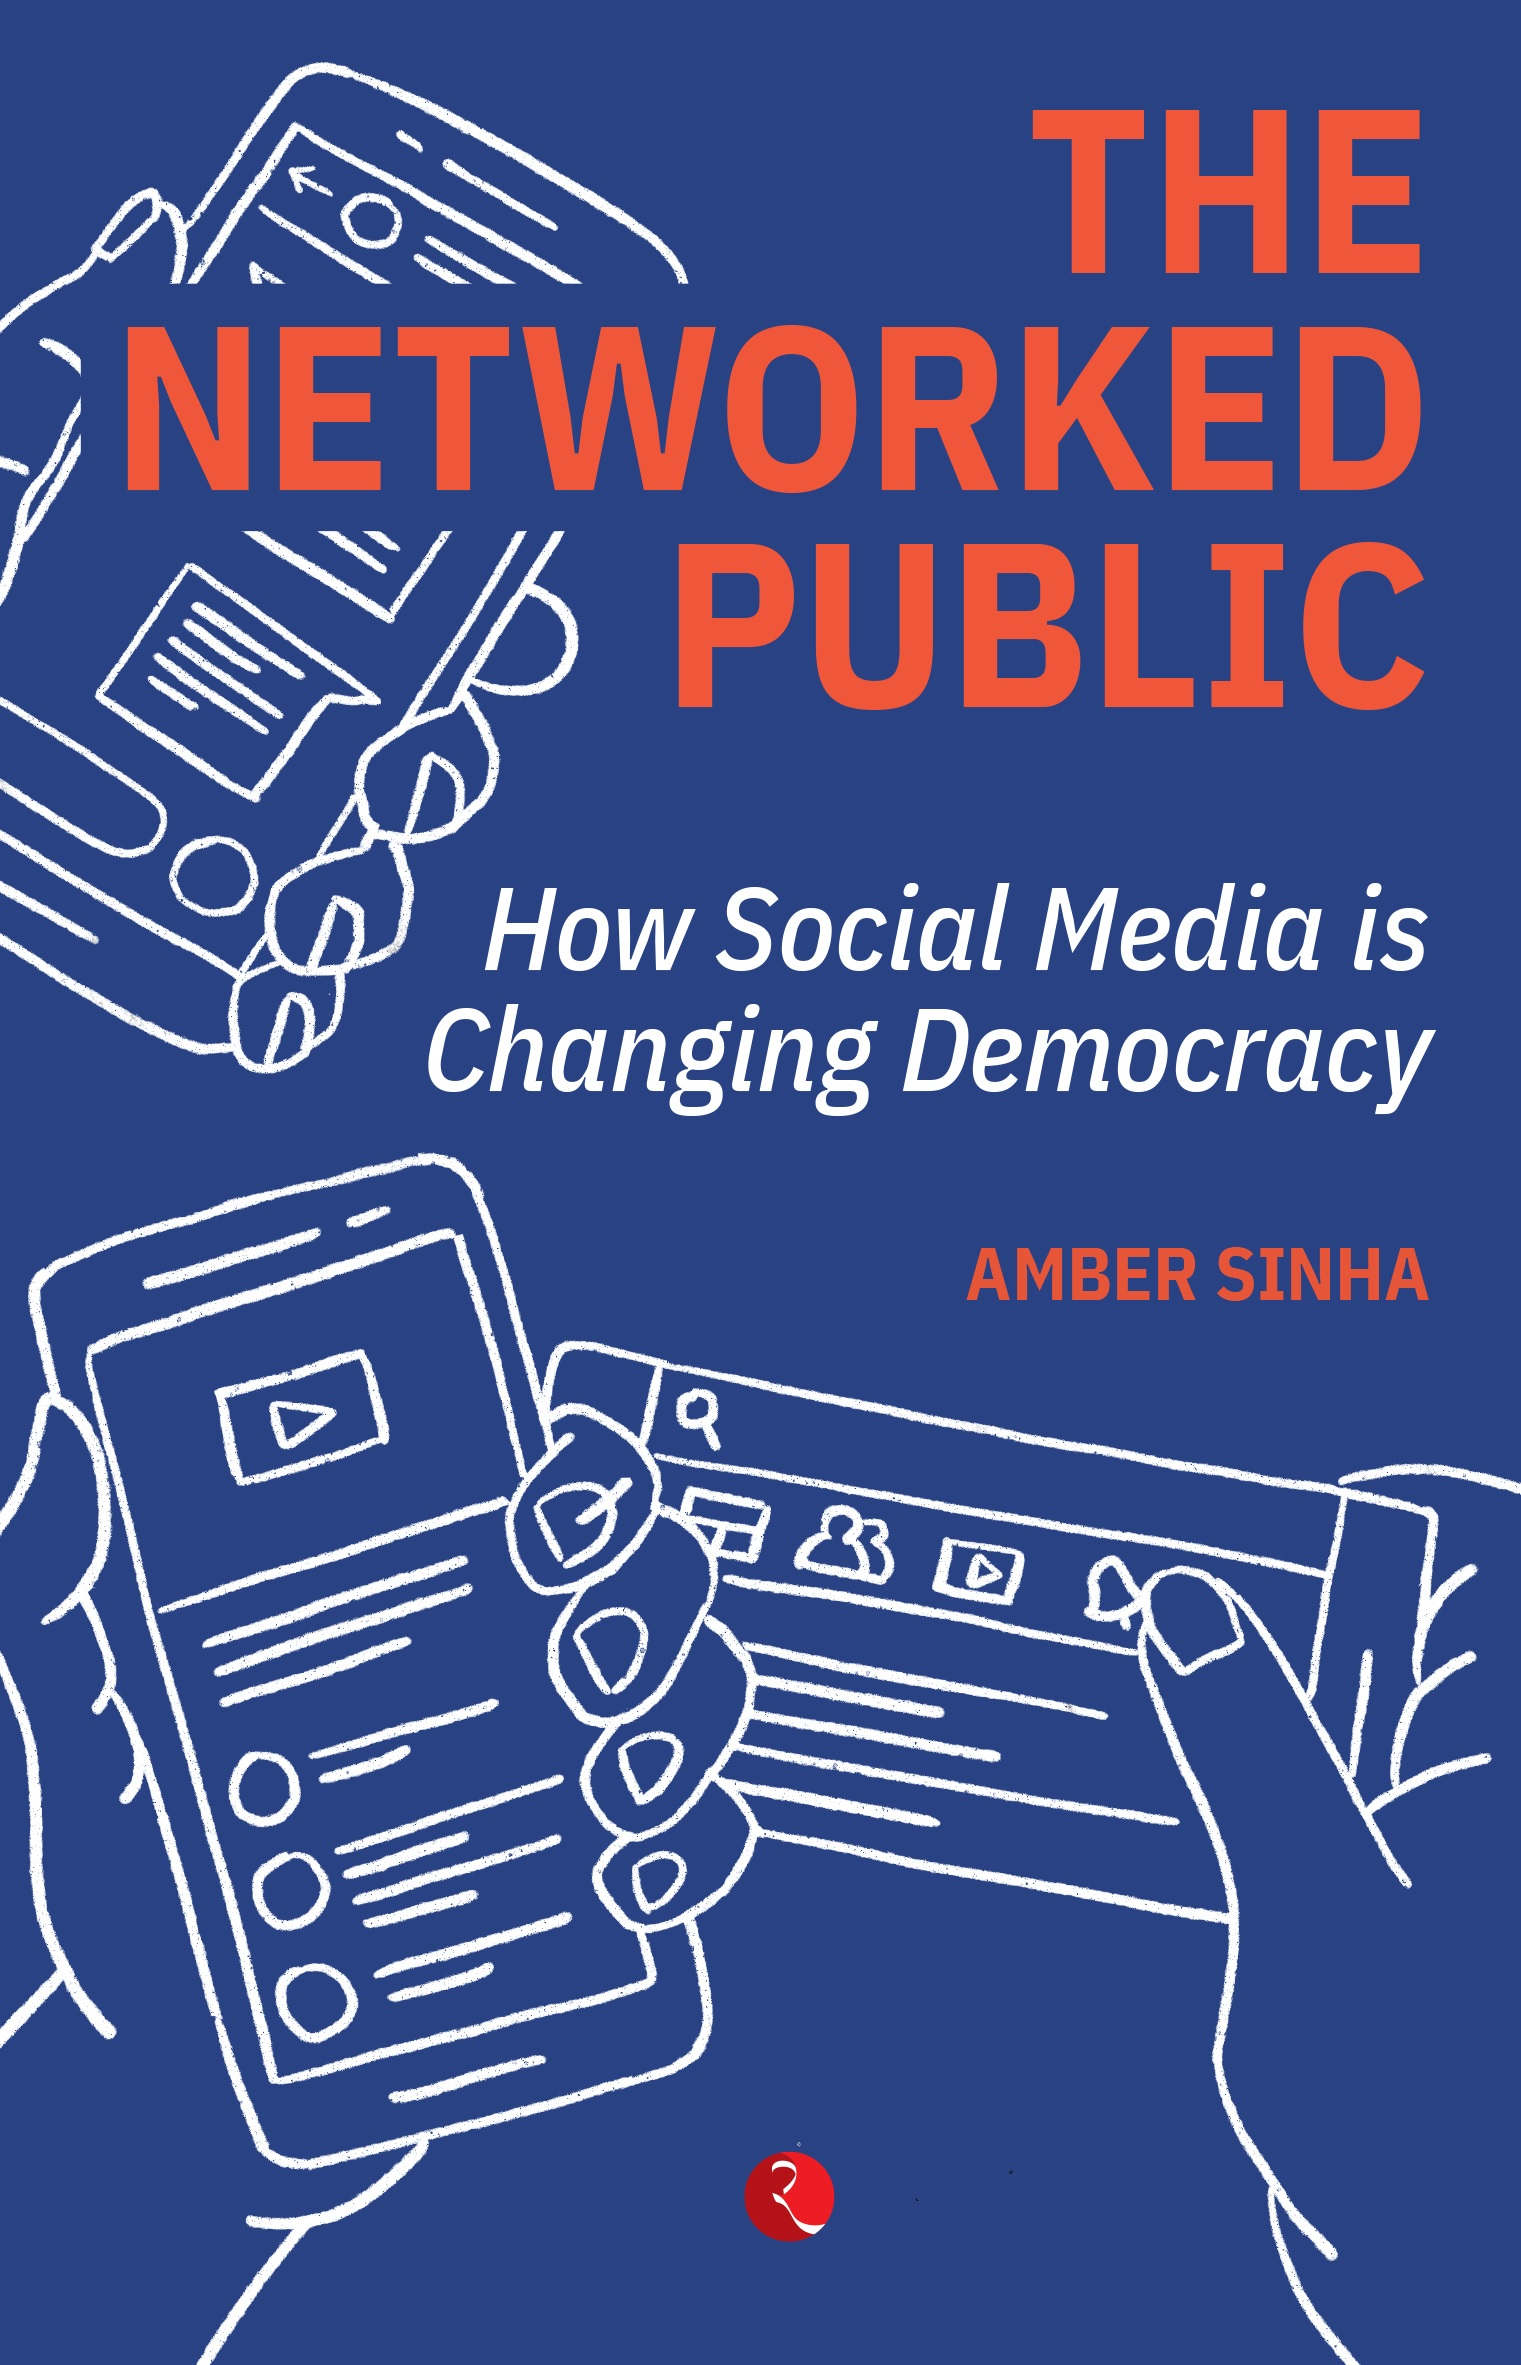 The Networked Public: How Social Media is Changing Democracy